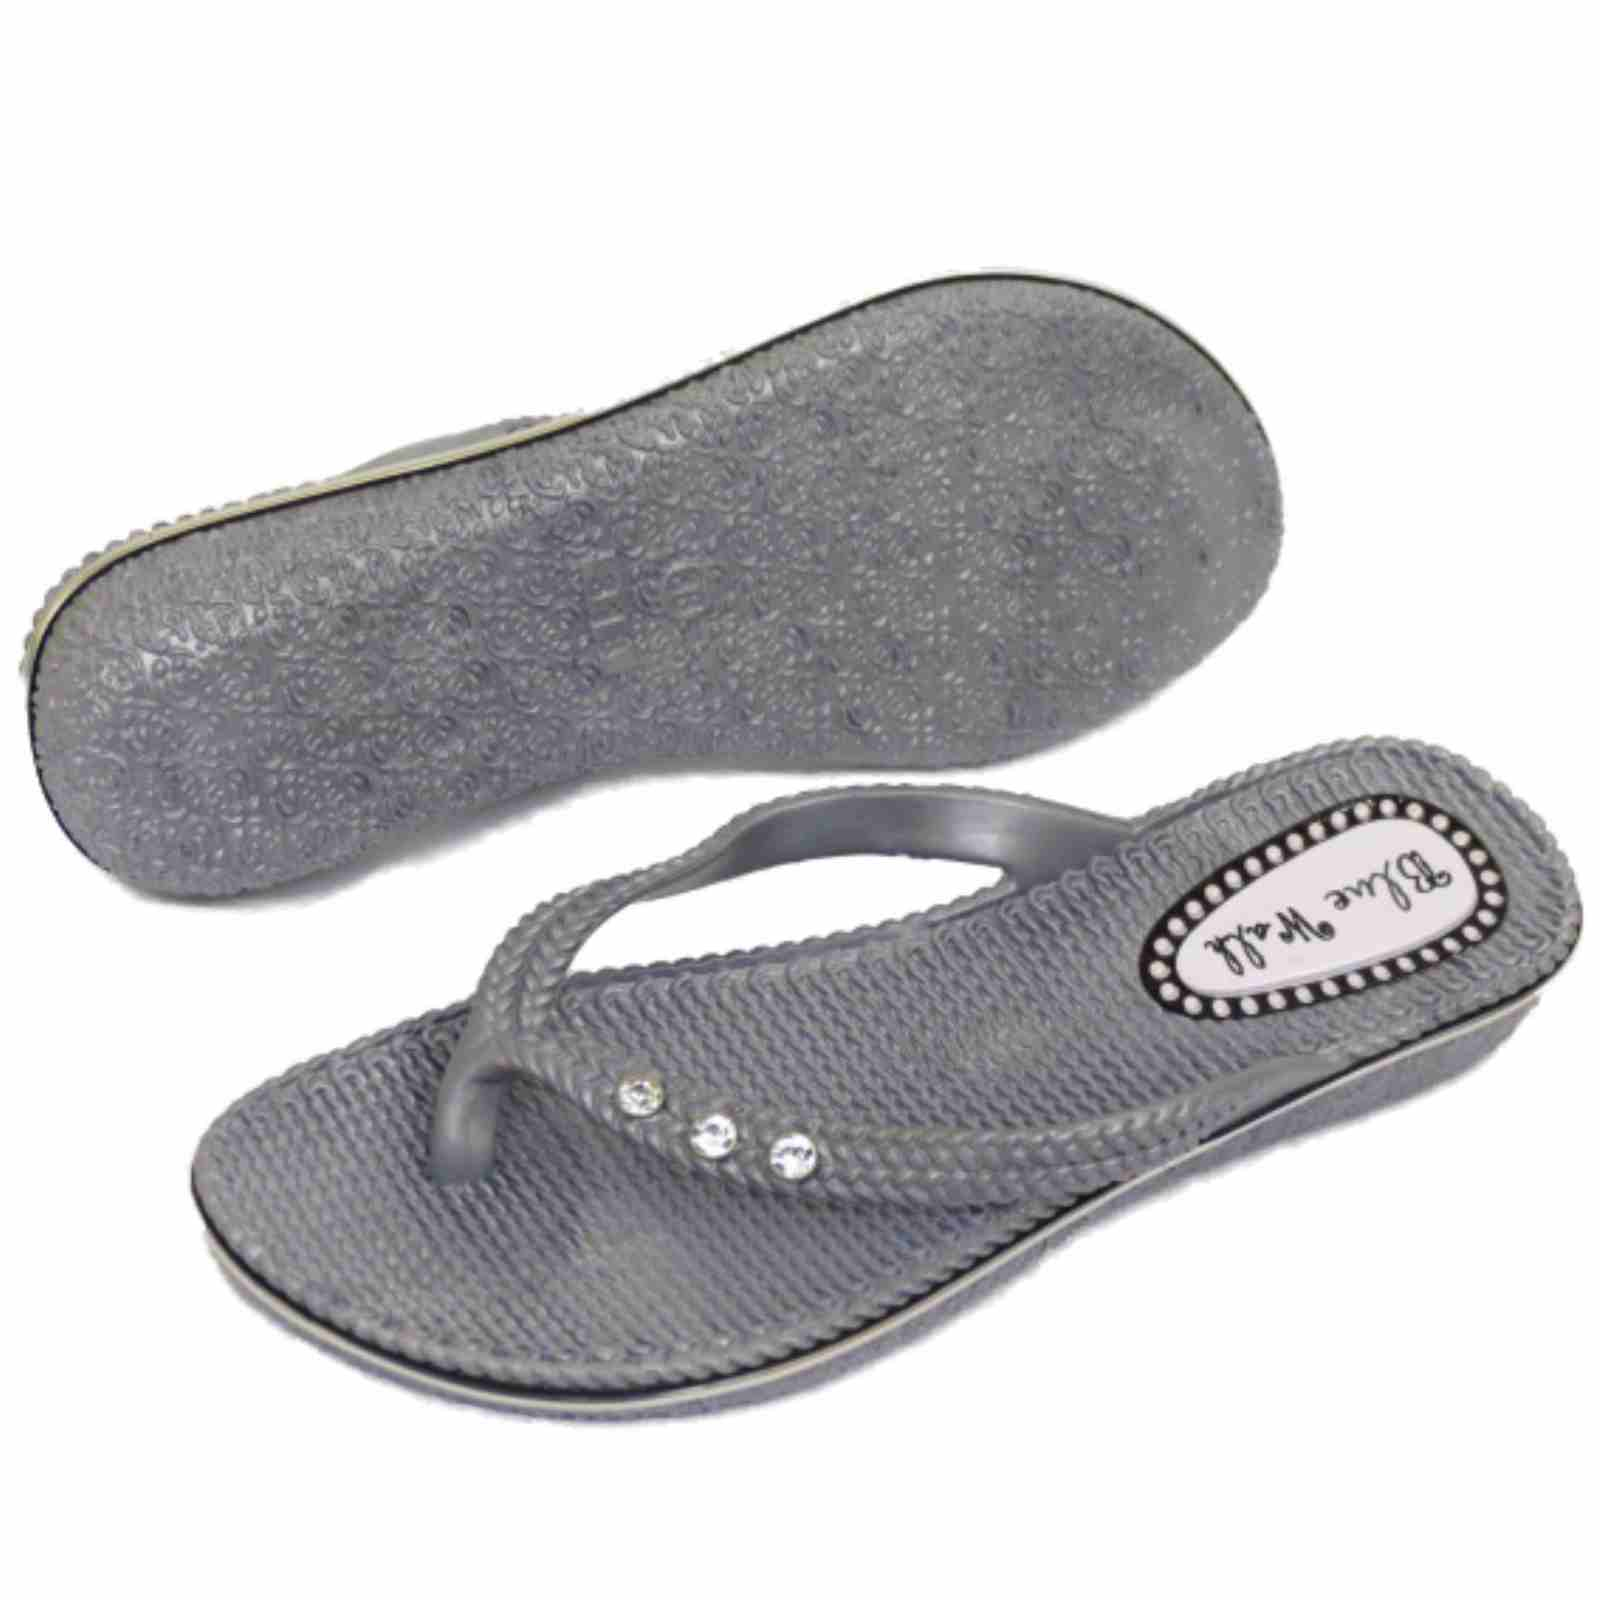 a673b07aead2 Sentinel WOMENS FLAT SILVER TOE-POST FLIP-FLOP BEACH SUMMER JELLY SHOES  SANDALS SIZES 3